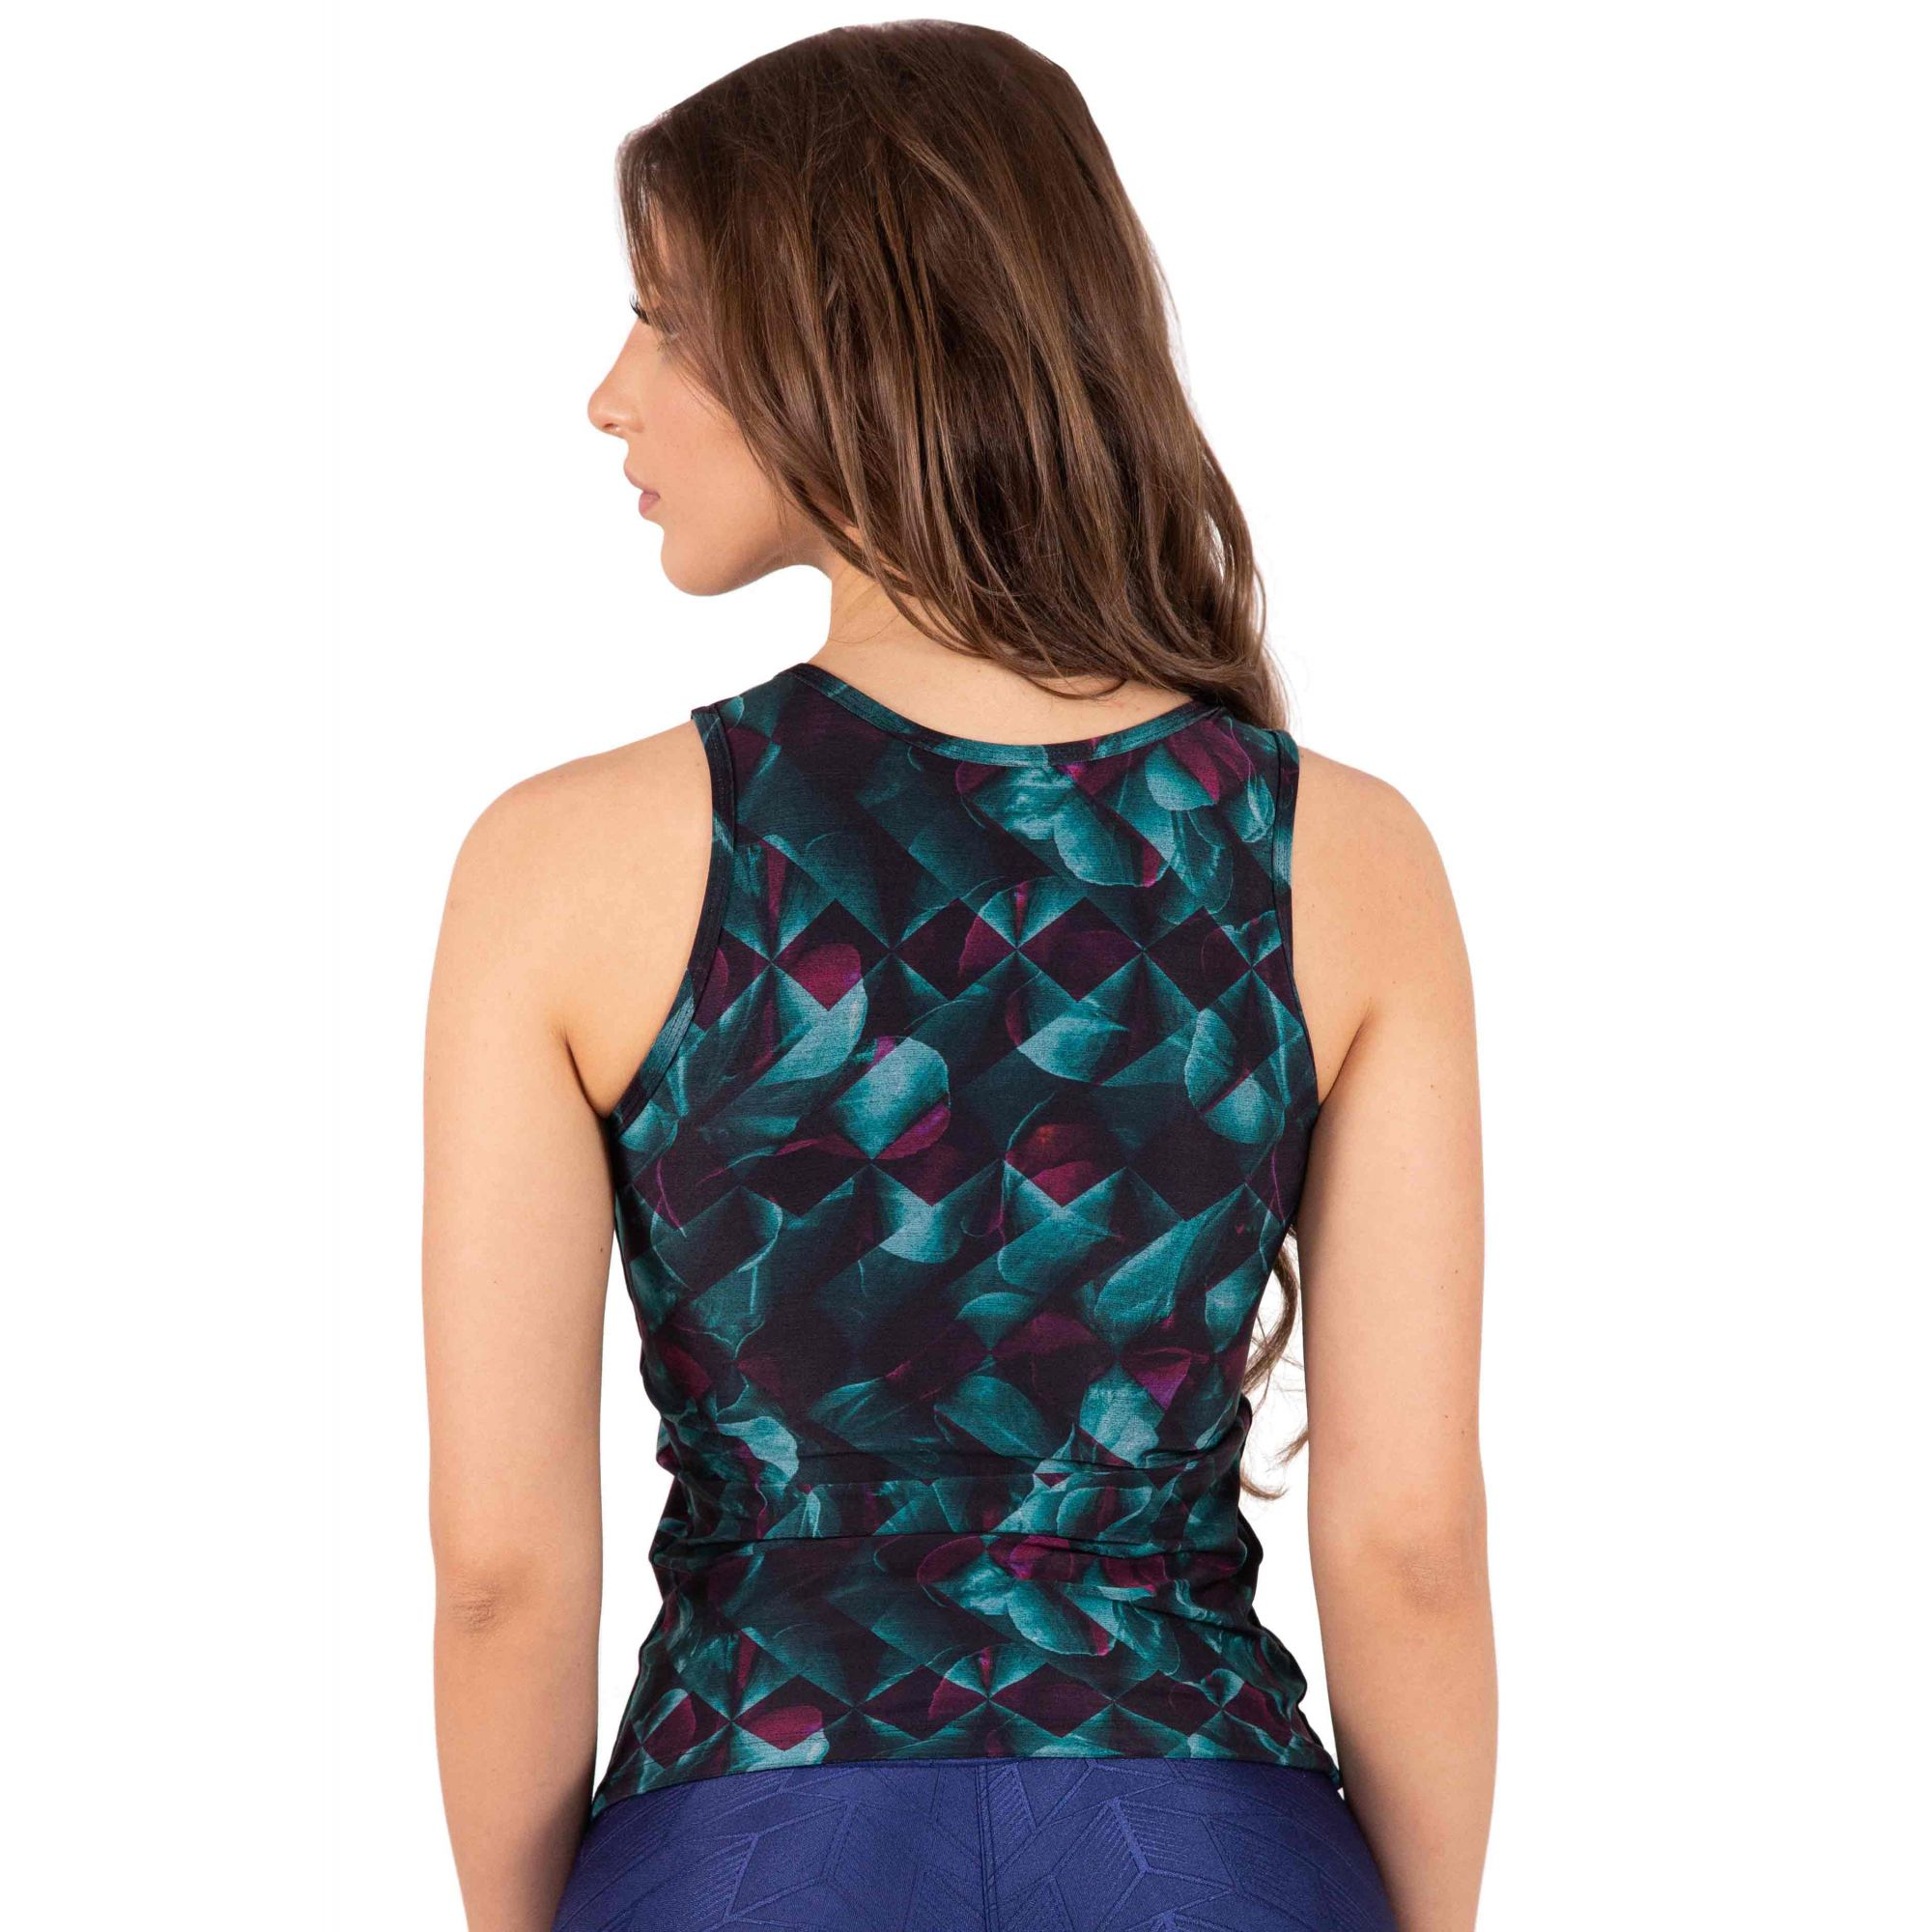 REGATA ESTAMPADA CASUAL DOUBLE ONIX FLORAL TOP MODEL